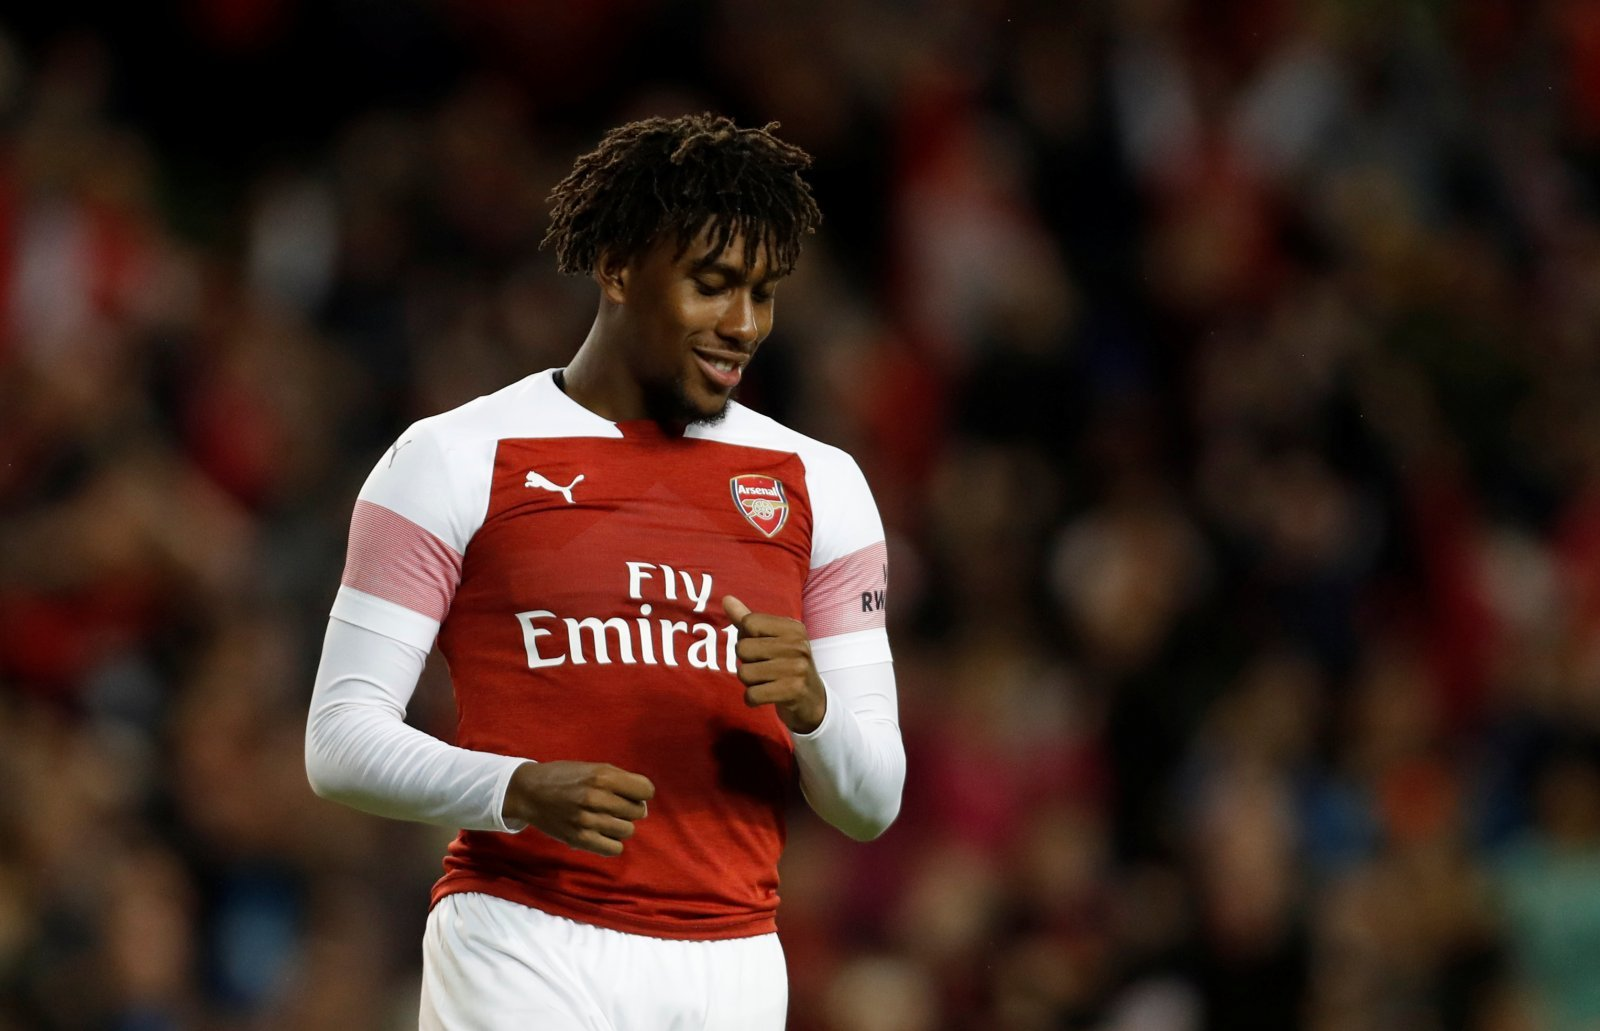 Arsenal should have sold Iwobi to recruit a better winger